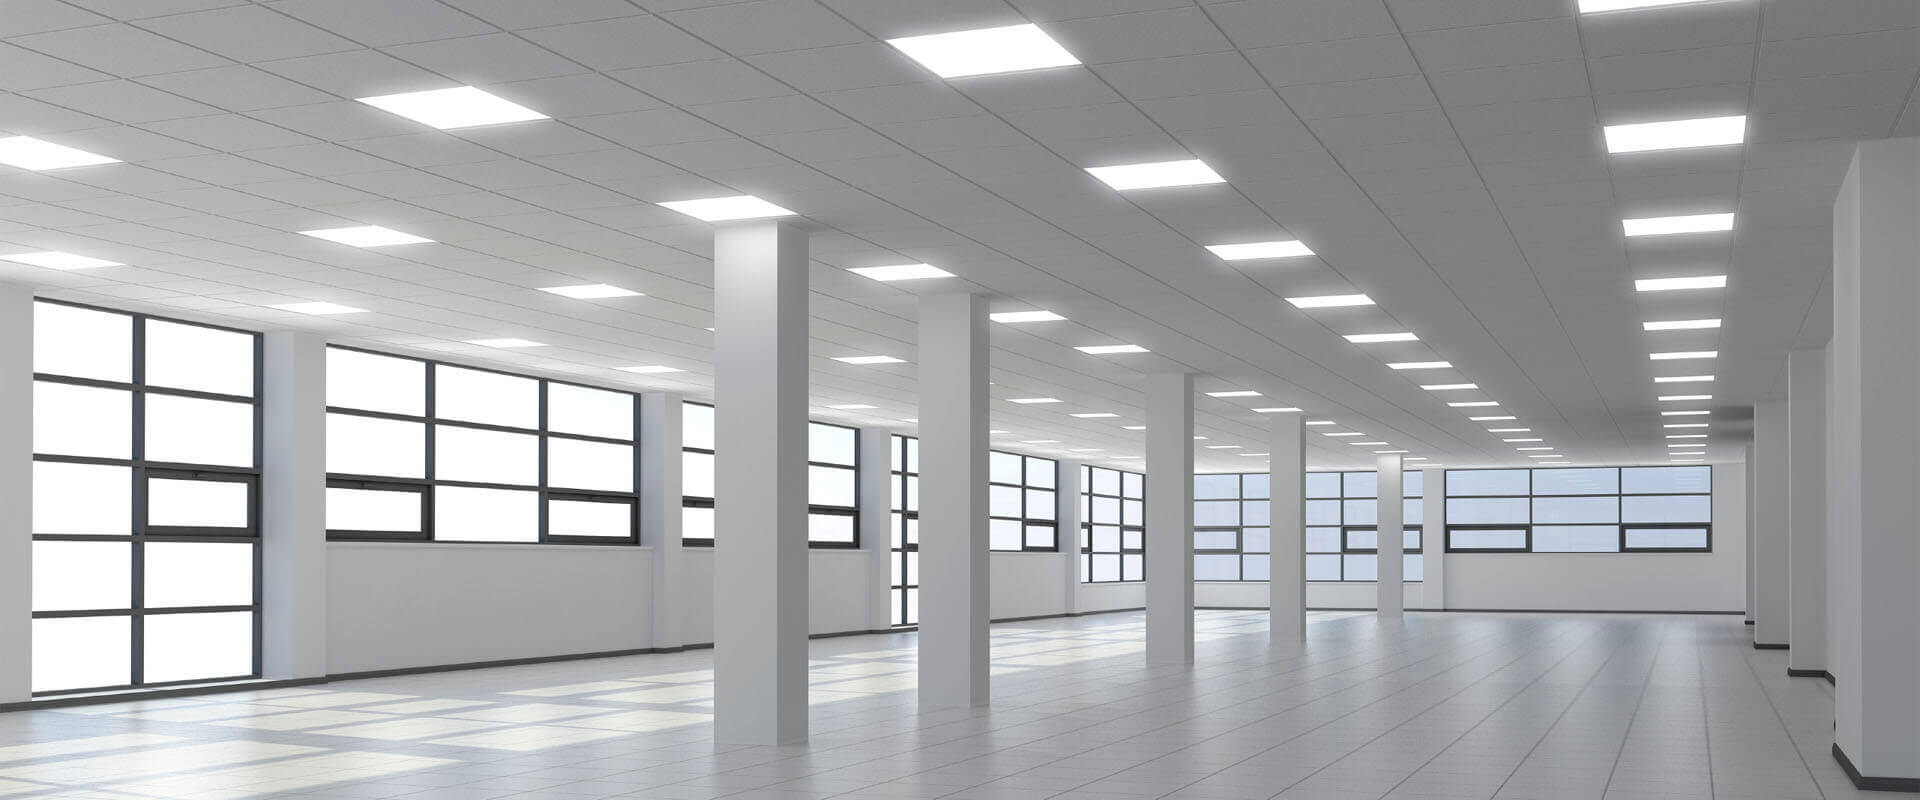 LED lighting services in Stansted